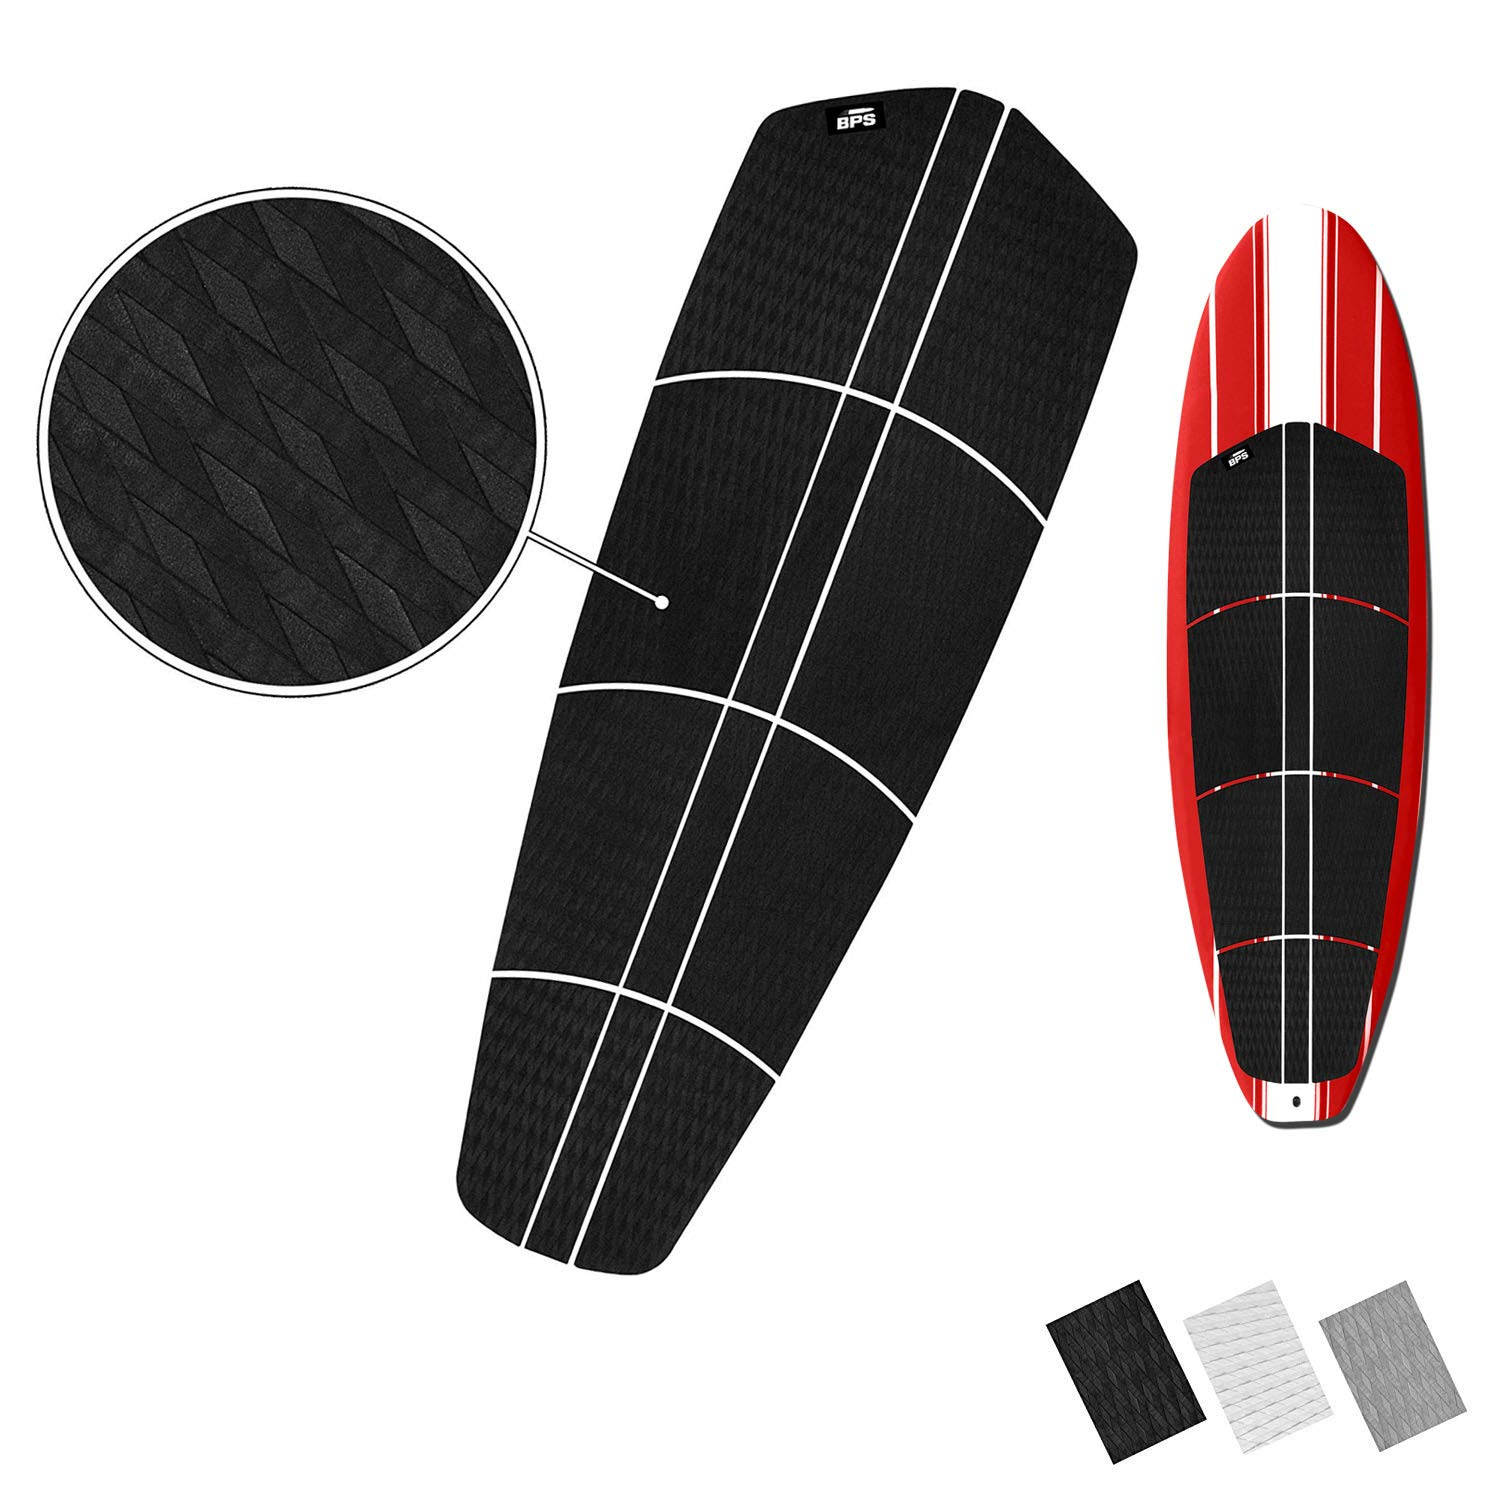 BPS 12-pc EVA Sheet Traction Pad with 3M Adhesives - for Paddleboard, Longboard, and Surfboard (Charcoal Black) by BPS